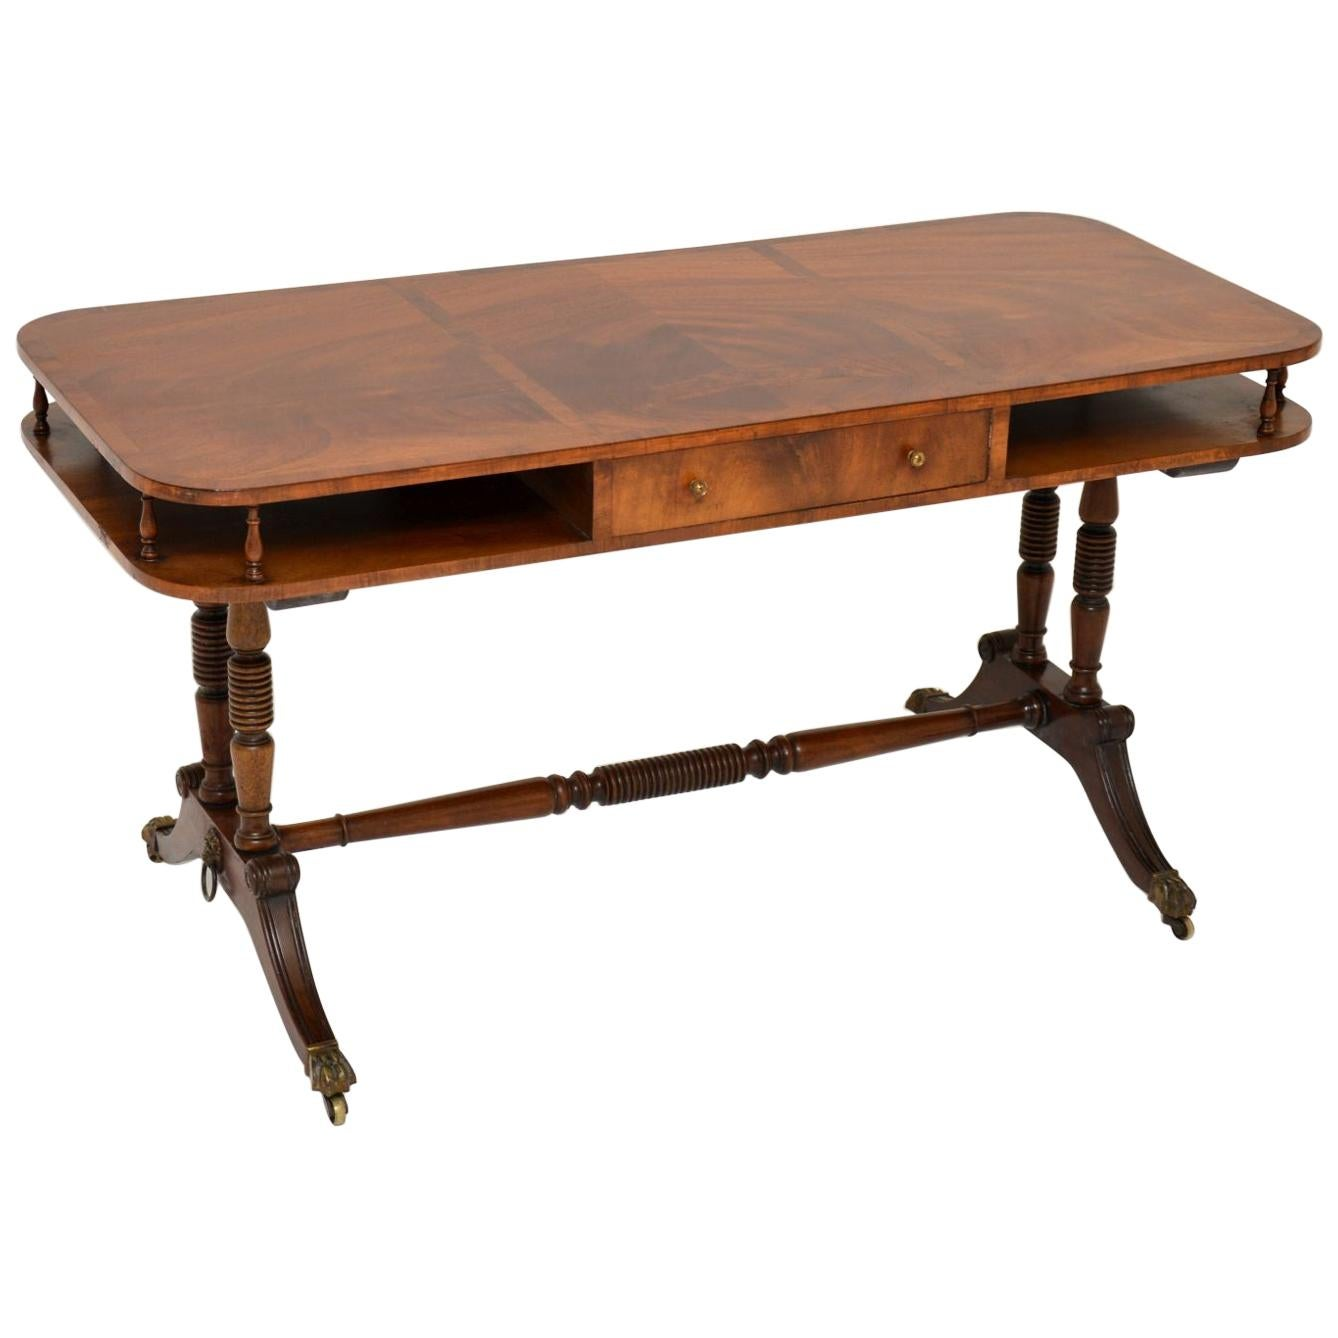 Antique Mahogany Regency Style Coffee Table